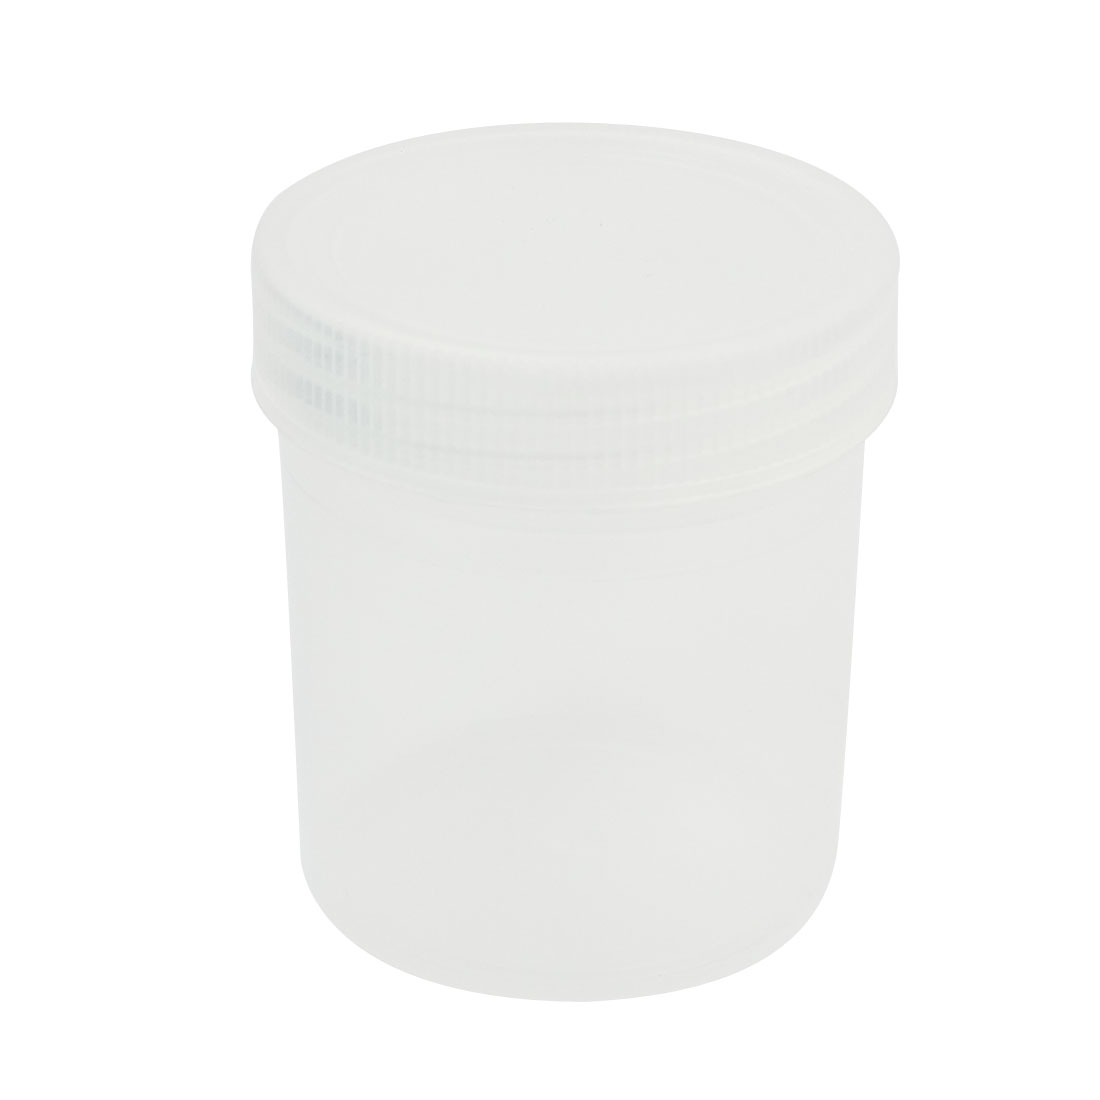 100mL Capacity Clear White Plastic Chemical Storage Jar Bottle for Laboratory